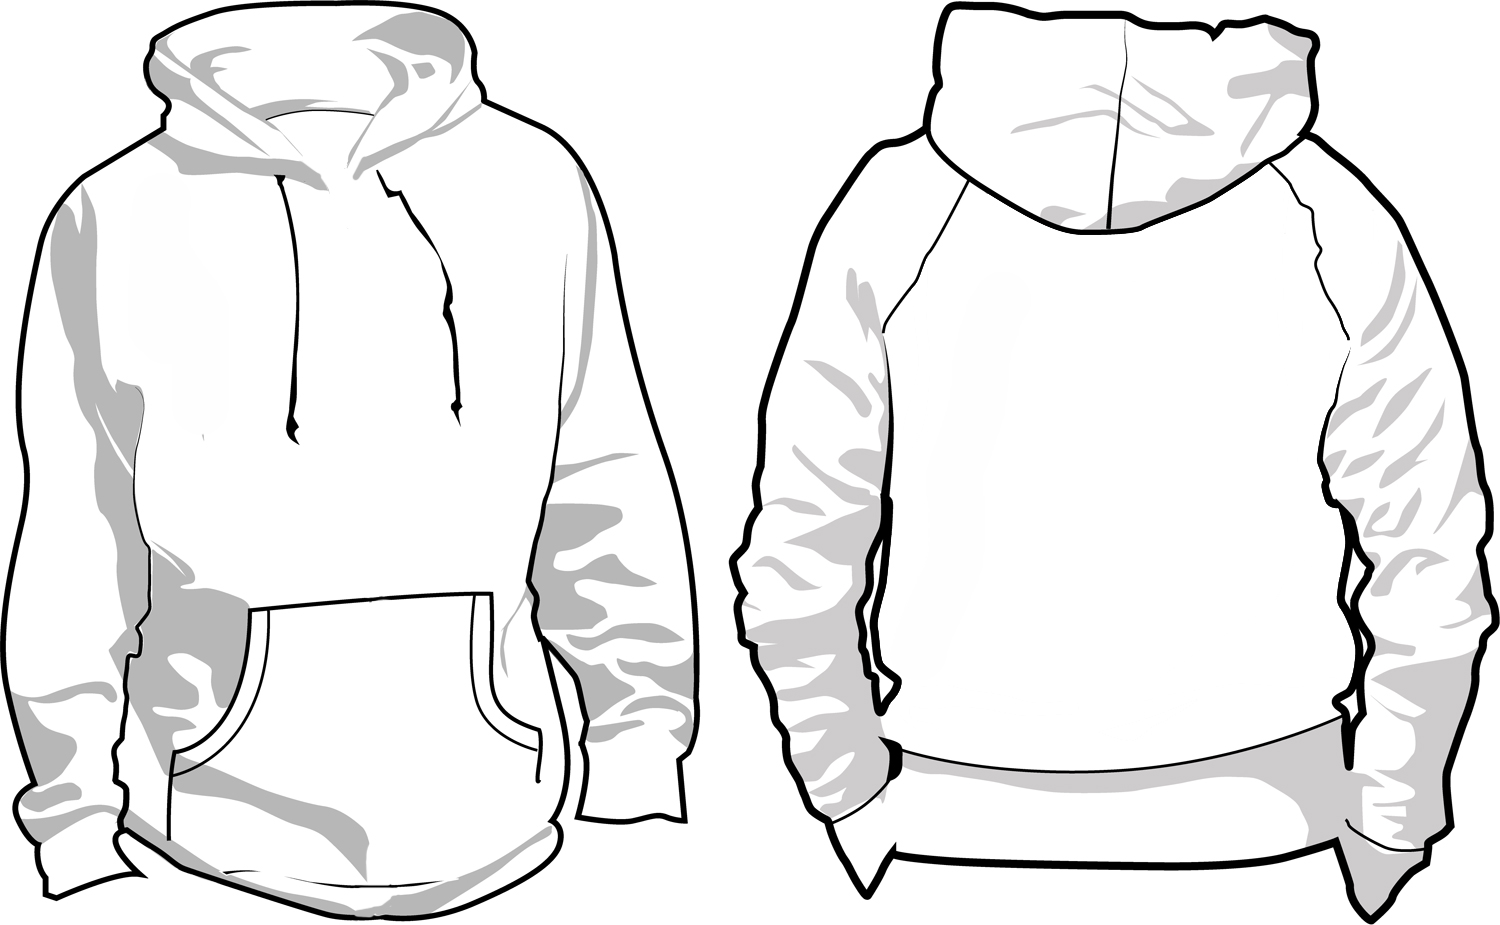 Pull-over clipart